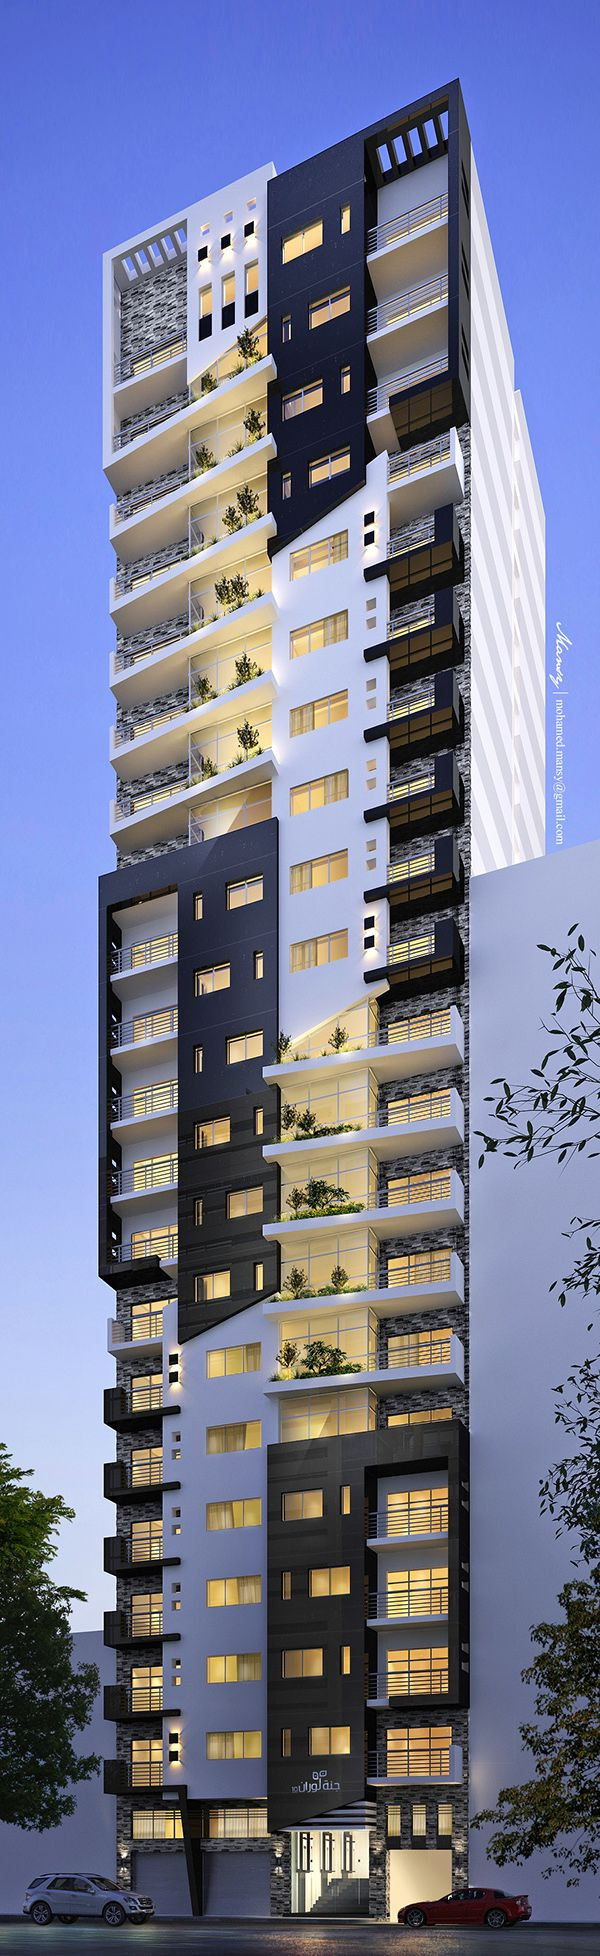 High Rise Apartment Design Exterior loran high-rise residential apartment building on behance | luxury